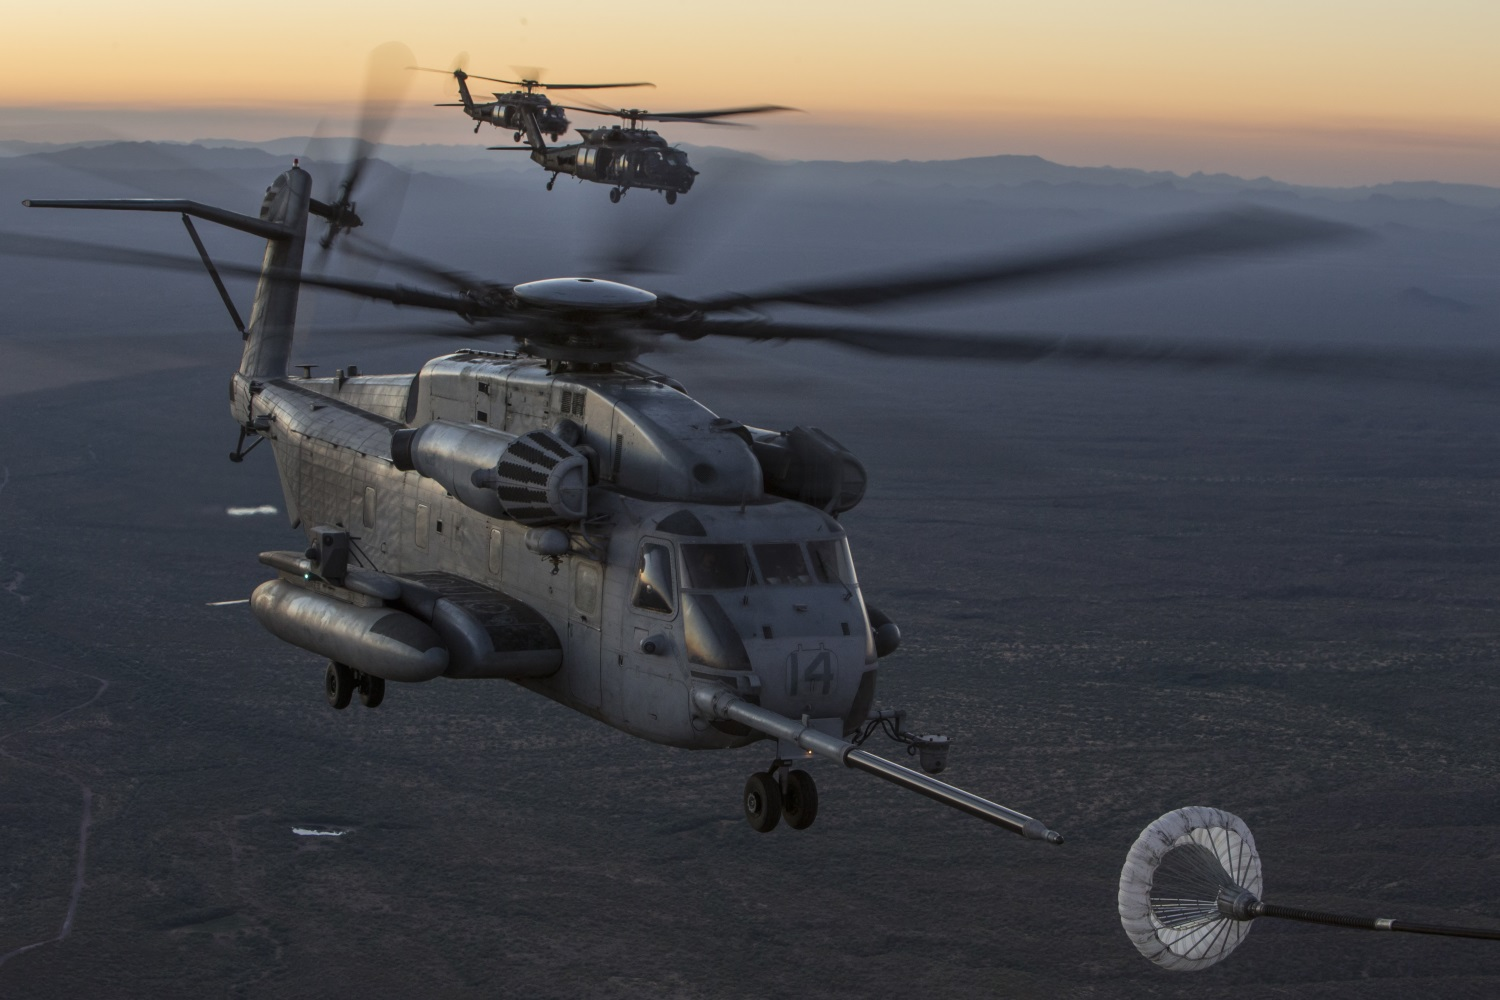 A U.S. Marine Corps CH-53E Super Stallion and U.S. Army MH-60M Black Hawks assigned to Marine Corps Aviation Weapons and Tactics Squadron One (MAWTS-1) conduct an aerial refueling exercise in support of Weapons and Tactics Instructor course (WTI) 1-18 in Yuma, Ariz., Oct. 6, 2017. (Sgt. Allison Lotz/Marine Corps)